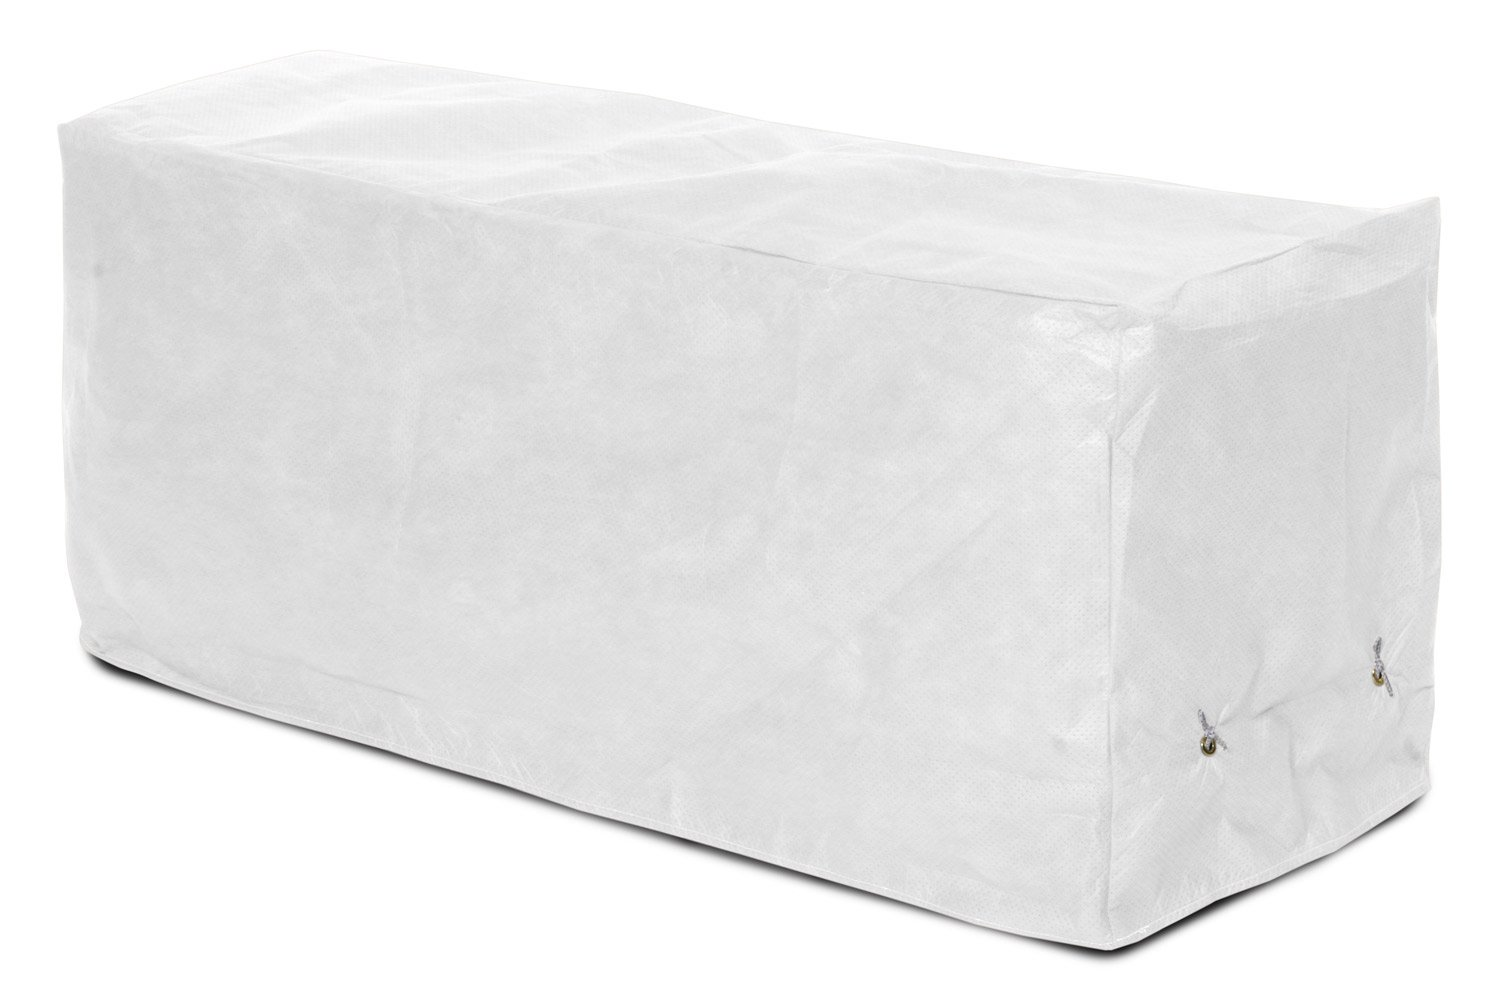 KoverRoos 54207 SupraRoos 8 ft Bench Cover, White - 96 W x 25 D x 36 H in. B0071IWSU4